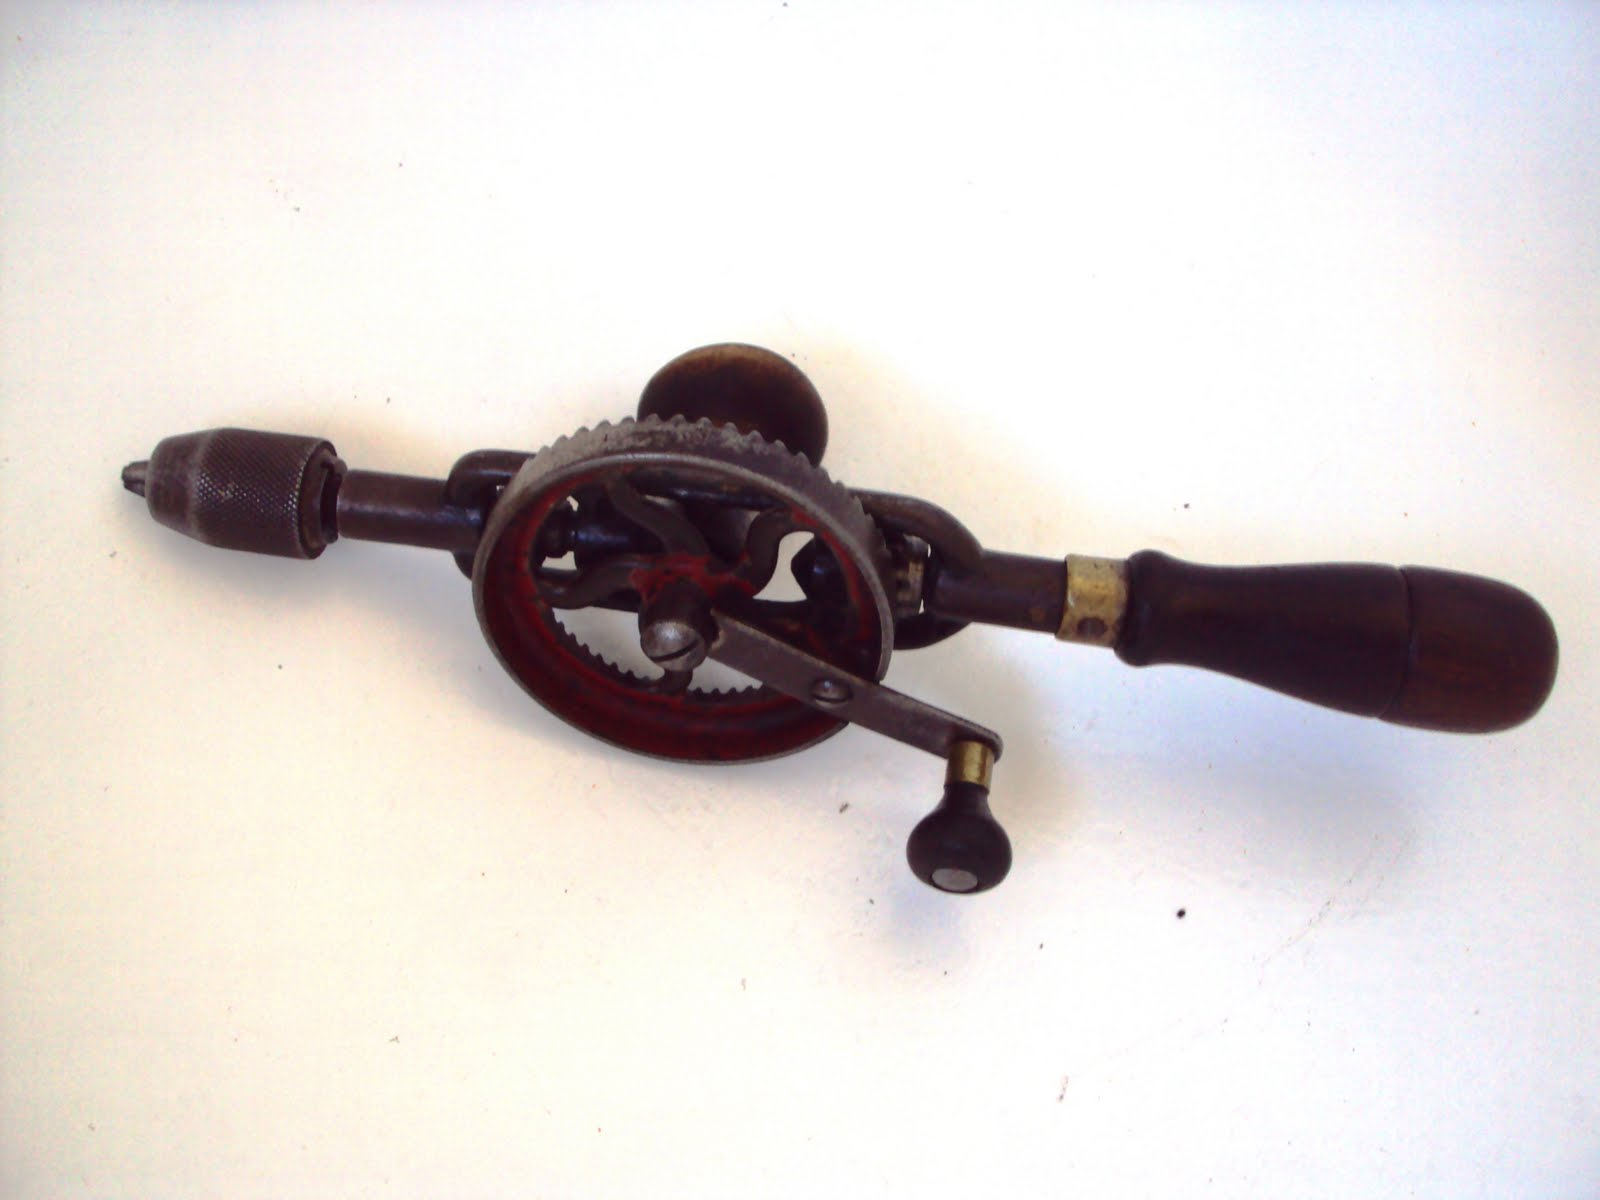 Price Drop Club: Auction 7: Antique Hand Drill - THIS AUCTION SITE ...